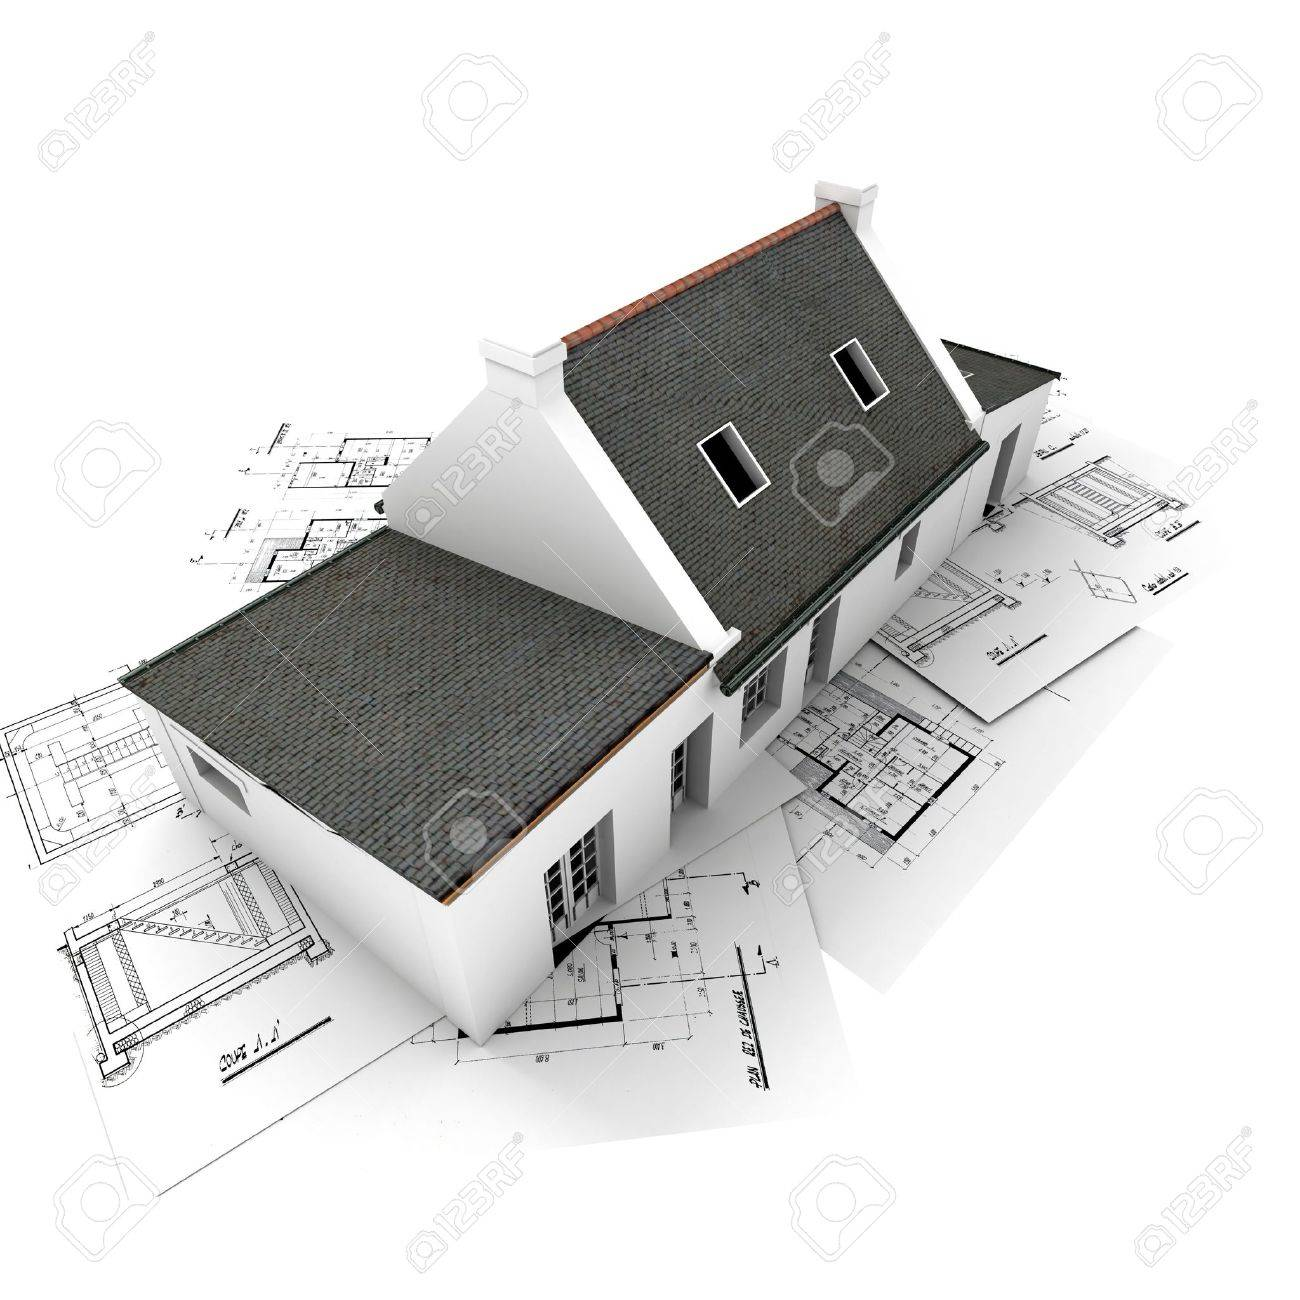 Rendering Of A House On Top Of Architecture Blueprints Stock